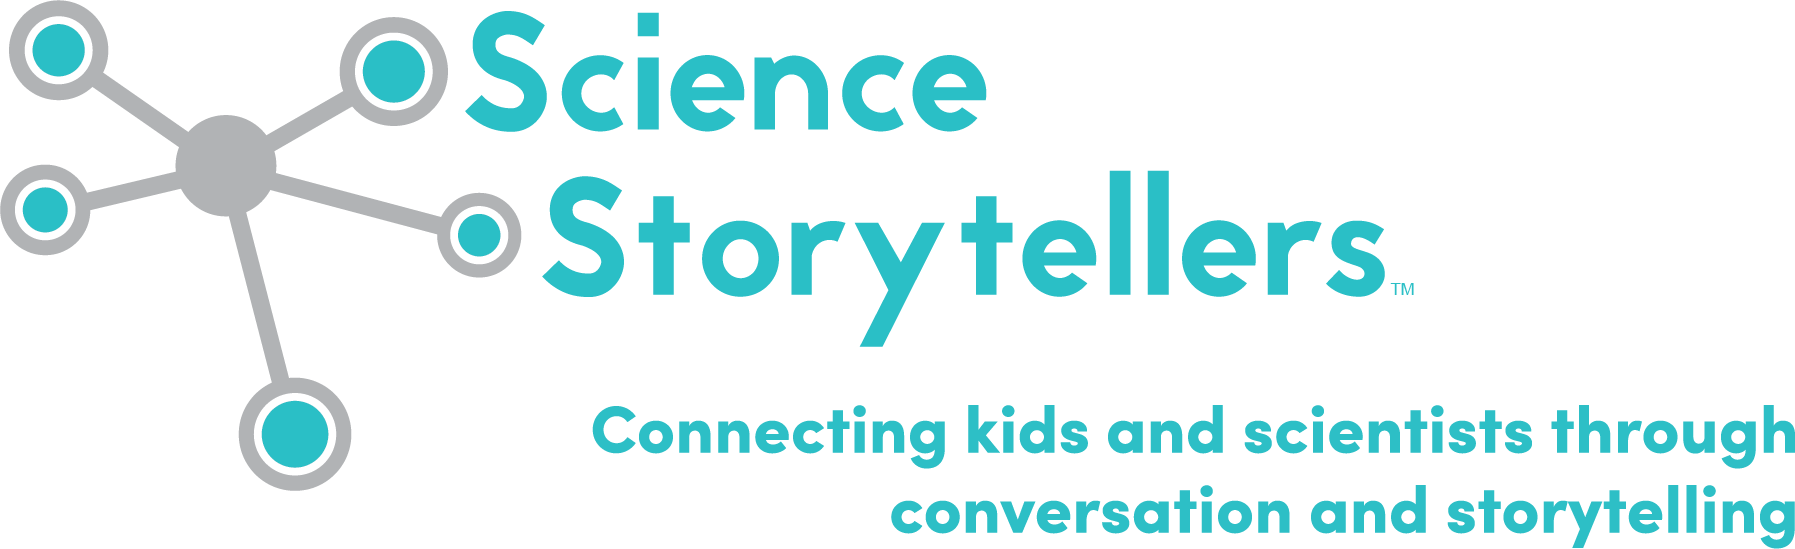 Logo and tagline of Science Storytellers: Connecting kids and scientists through conversation and storytelling.